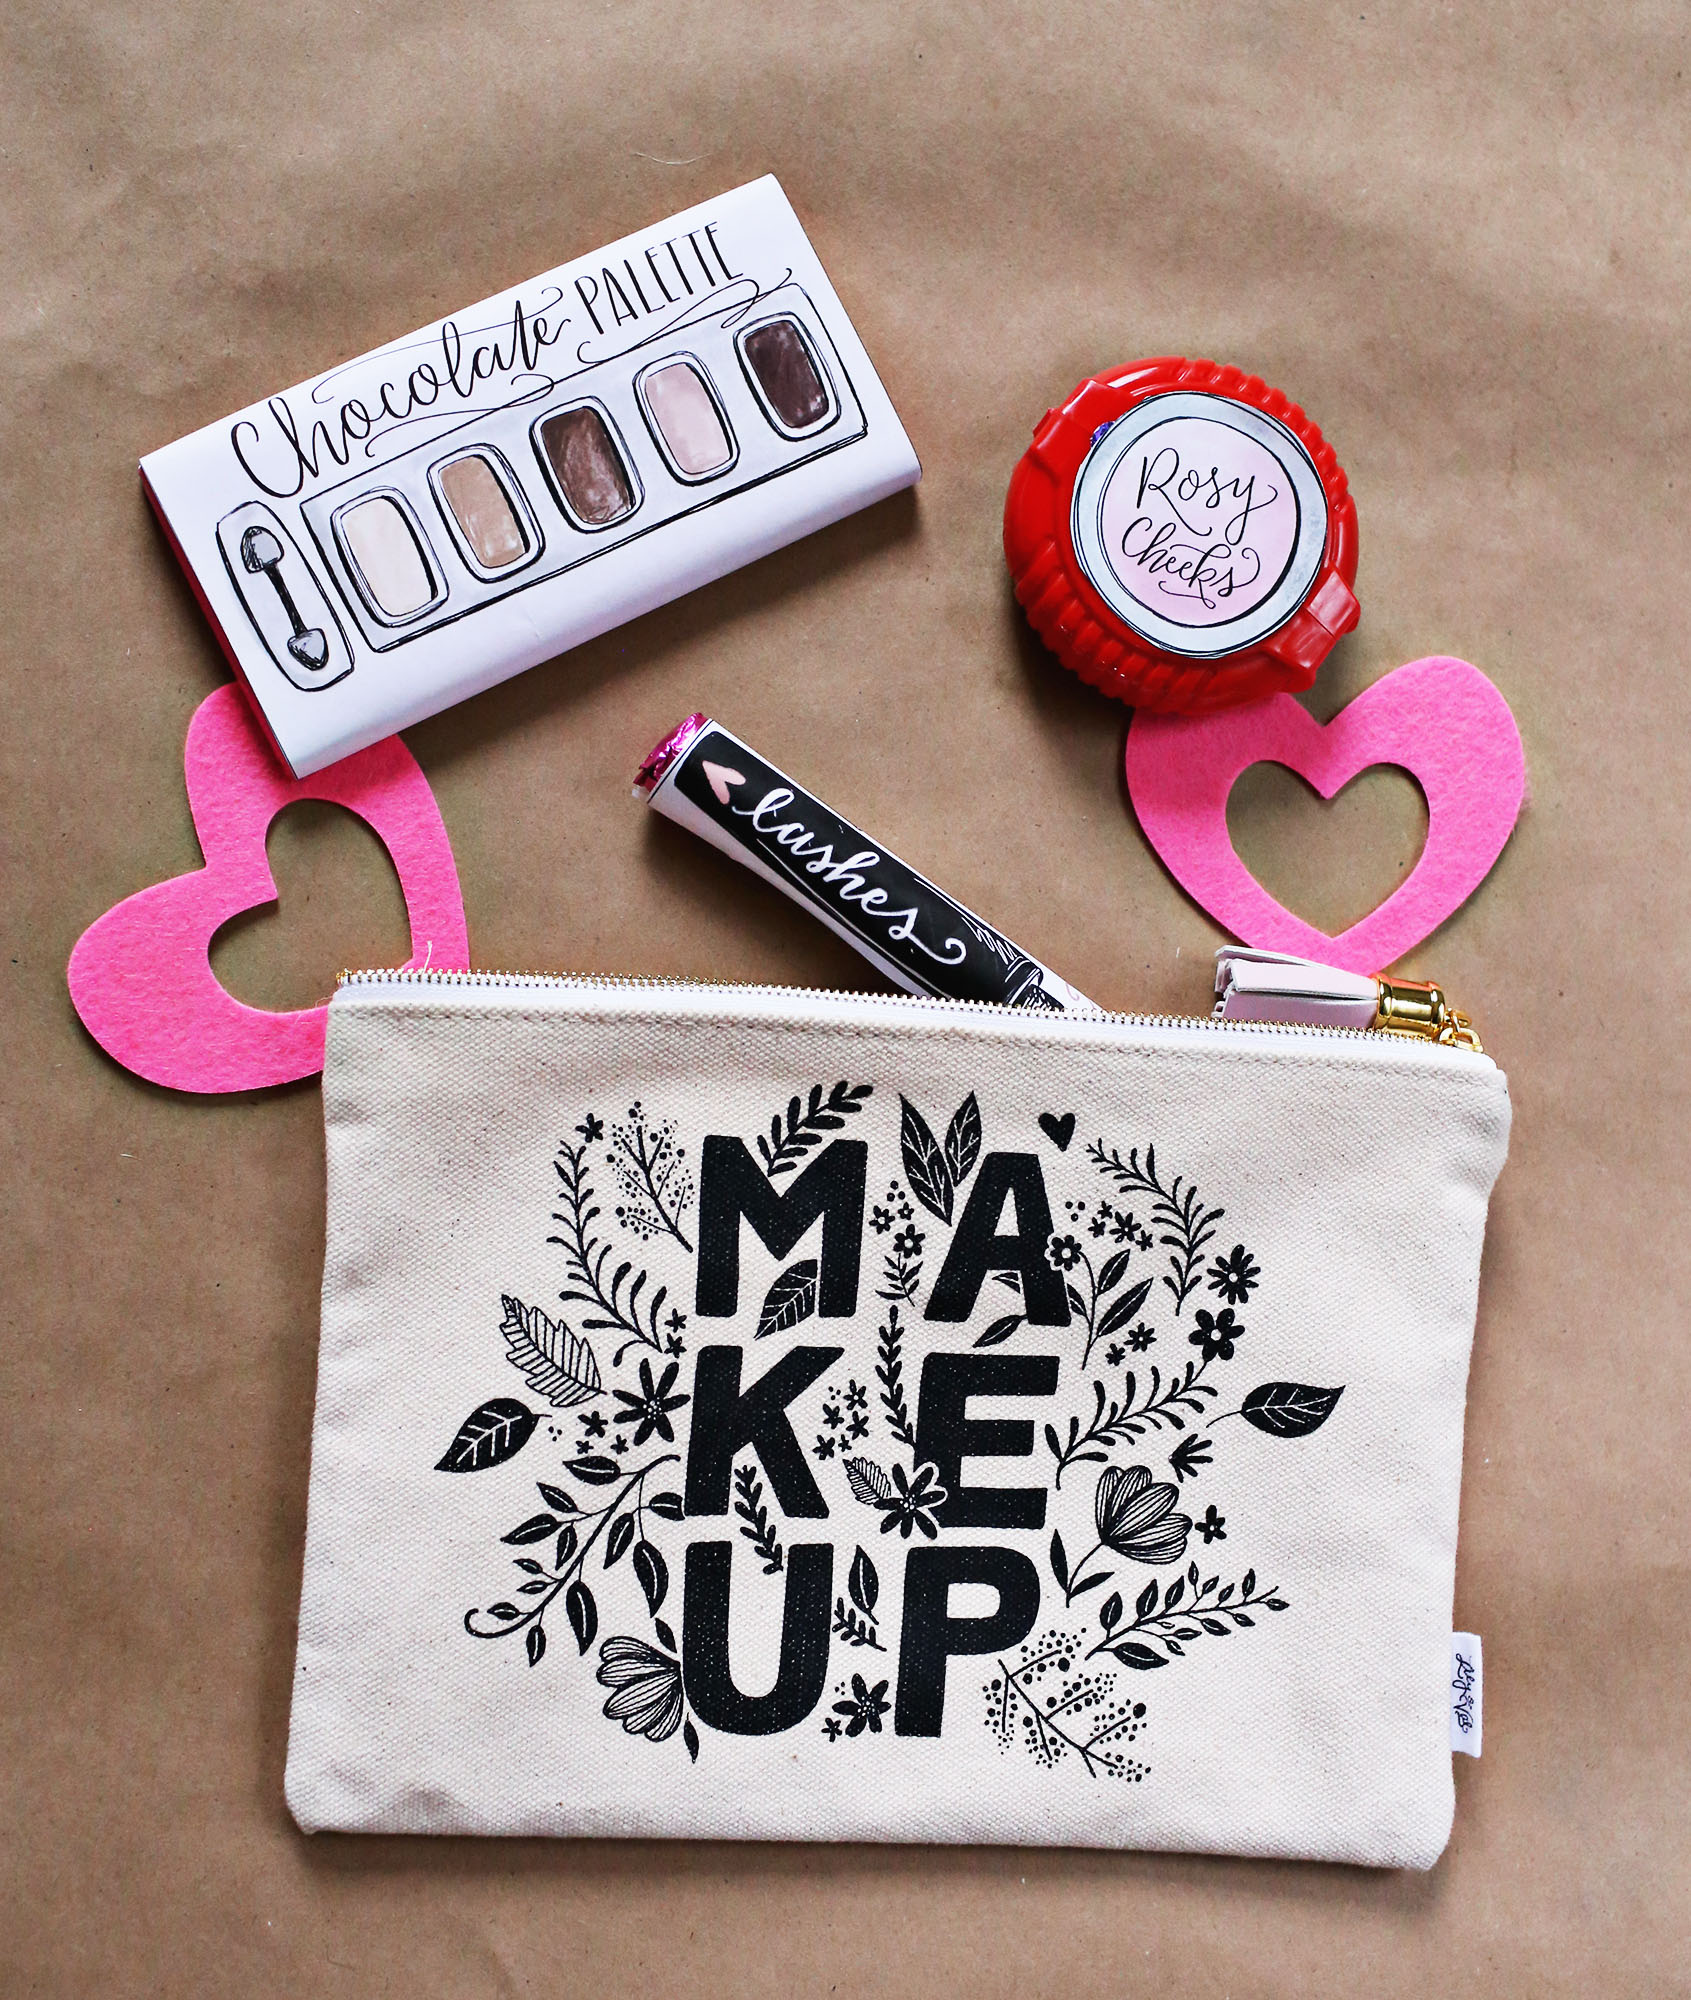 Makeup-themed Galentine's Gift - Gal Pal Gift - Bridesmaid Gift - Makeup pouch gift - Lily & Val Living